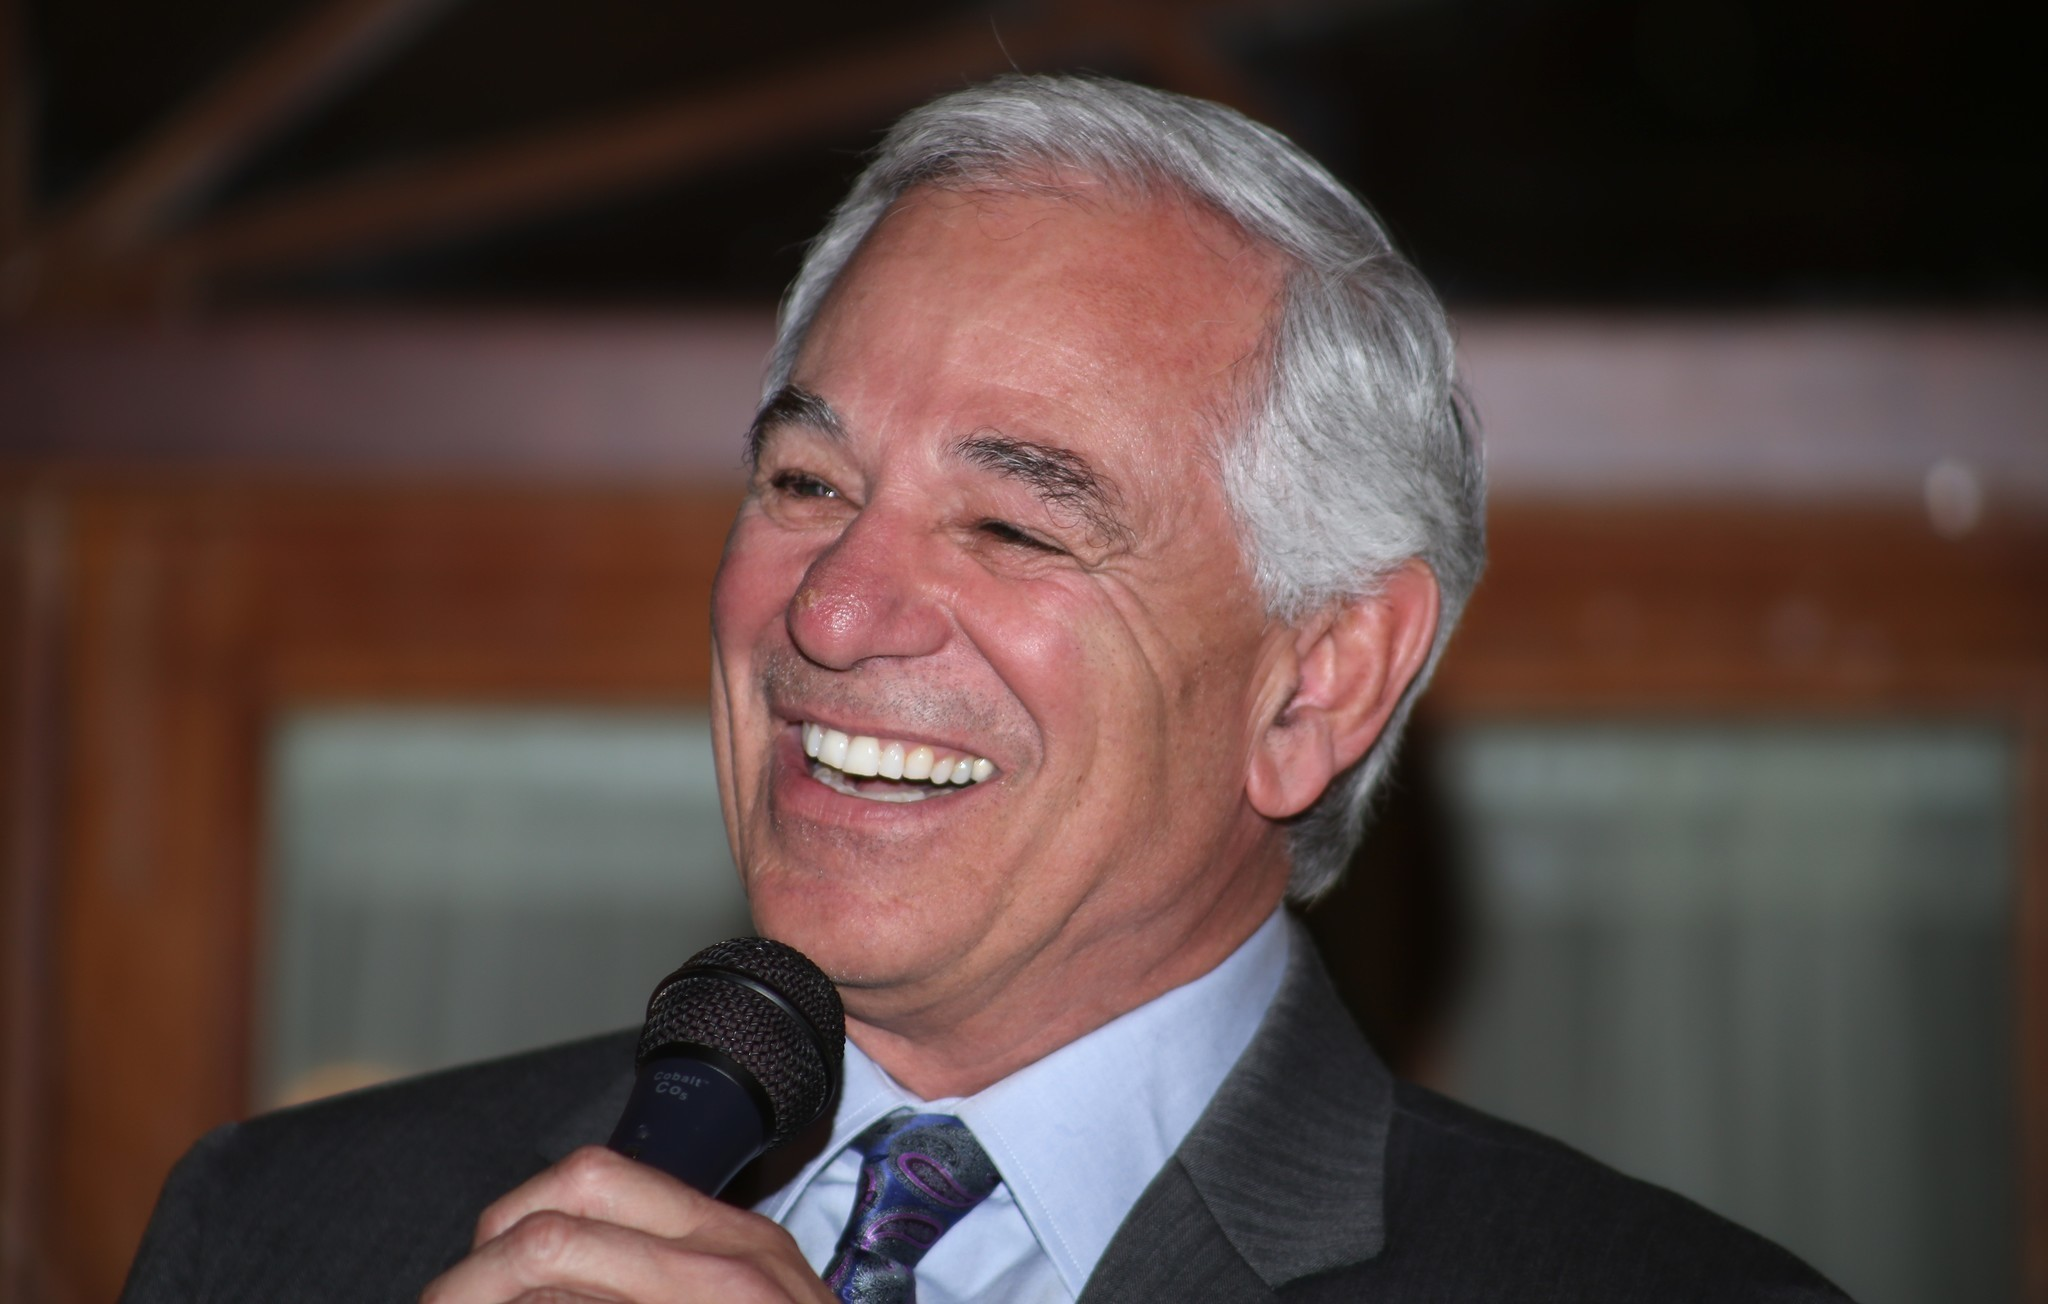 Bobby Valentine Downplays Reports That Trump Wants Him As Ambassador To  Japan   Hartford Courant